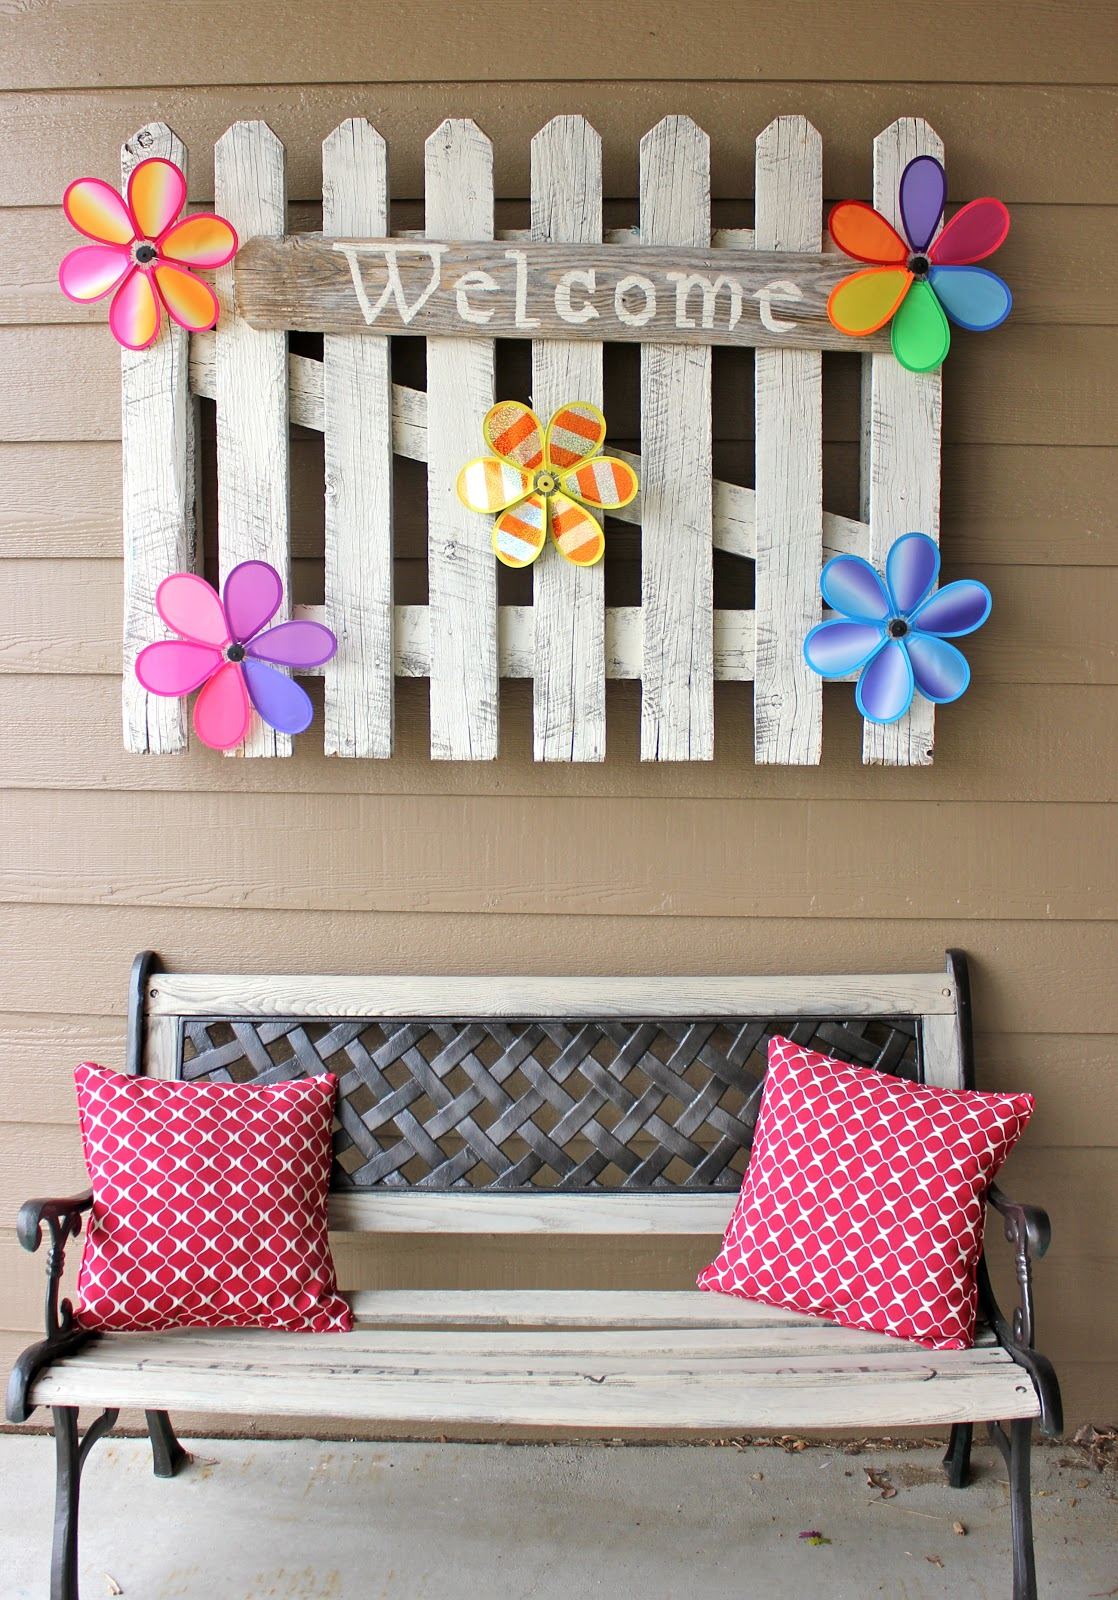 10 Colorful Ways to Spring-ify Your Porch